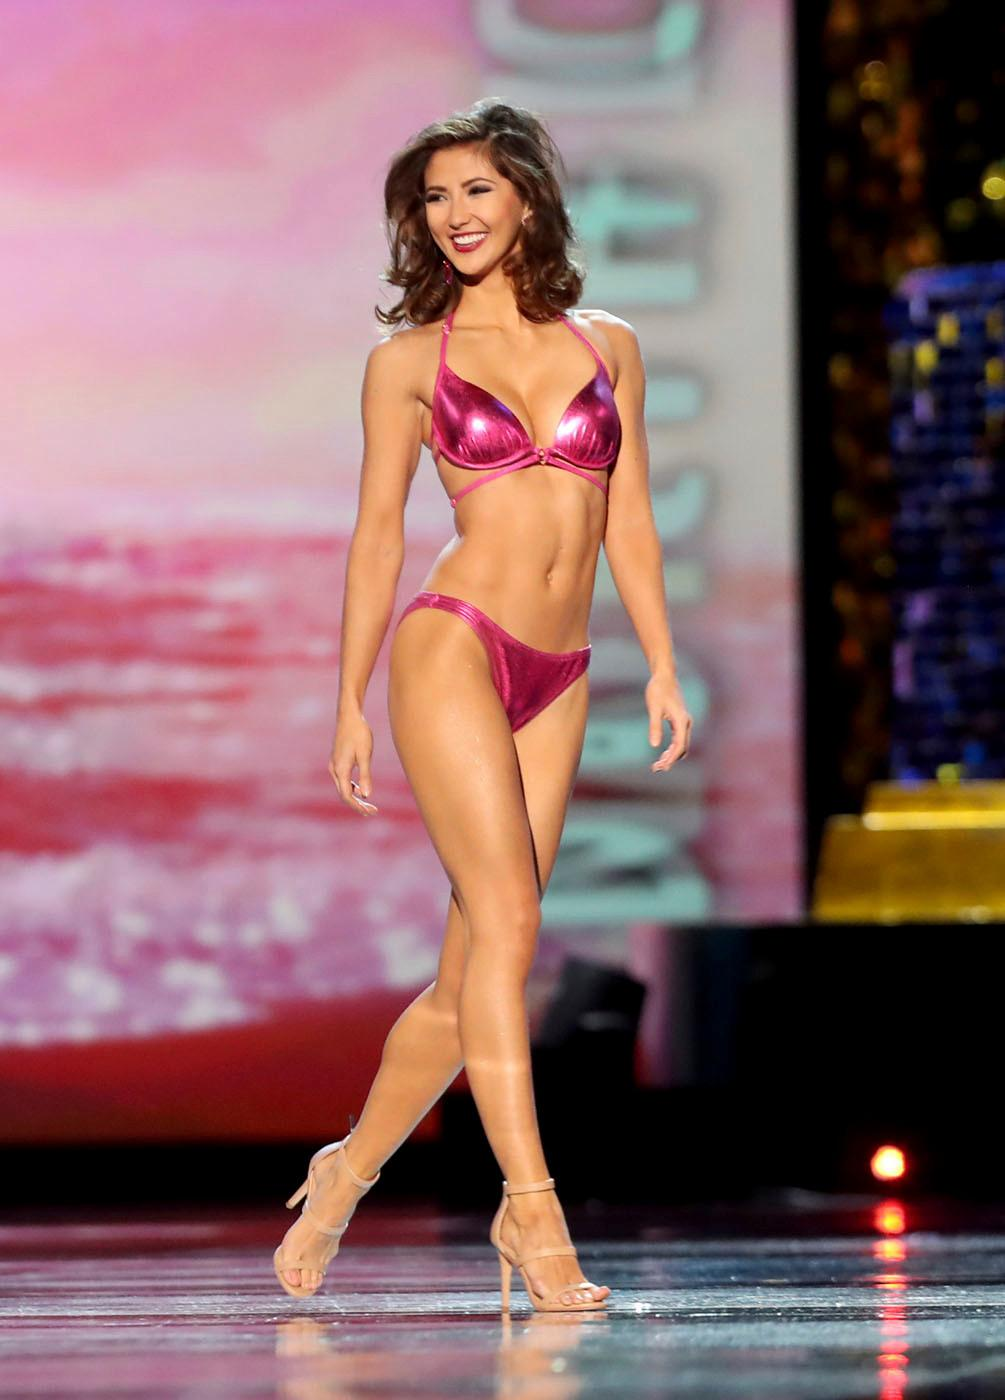 Miss Florida 2017 Sara Zeng competes in the swimwear category during the third and final preliminary night of the Miss America 2017 competition at Boardwalk Hall in Atlantic City, NJ. Friday, Sept. 8, 2017. (Edward Lea/The Press of Atlantic City via AP)